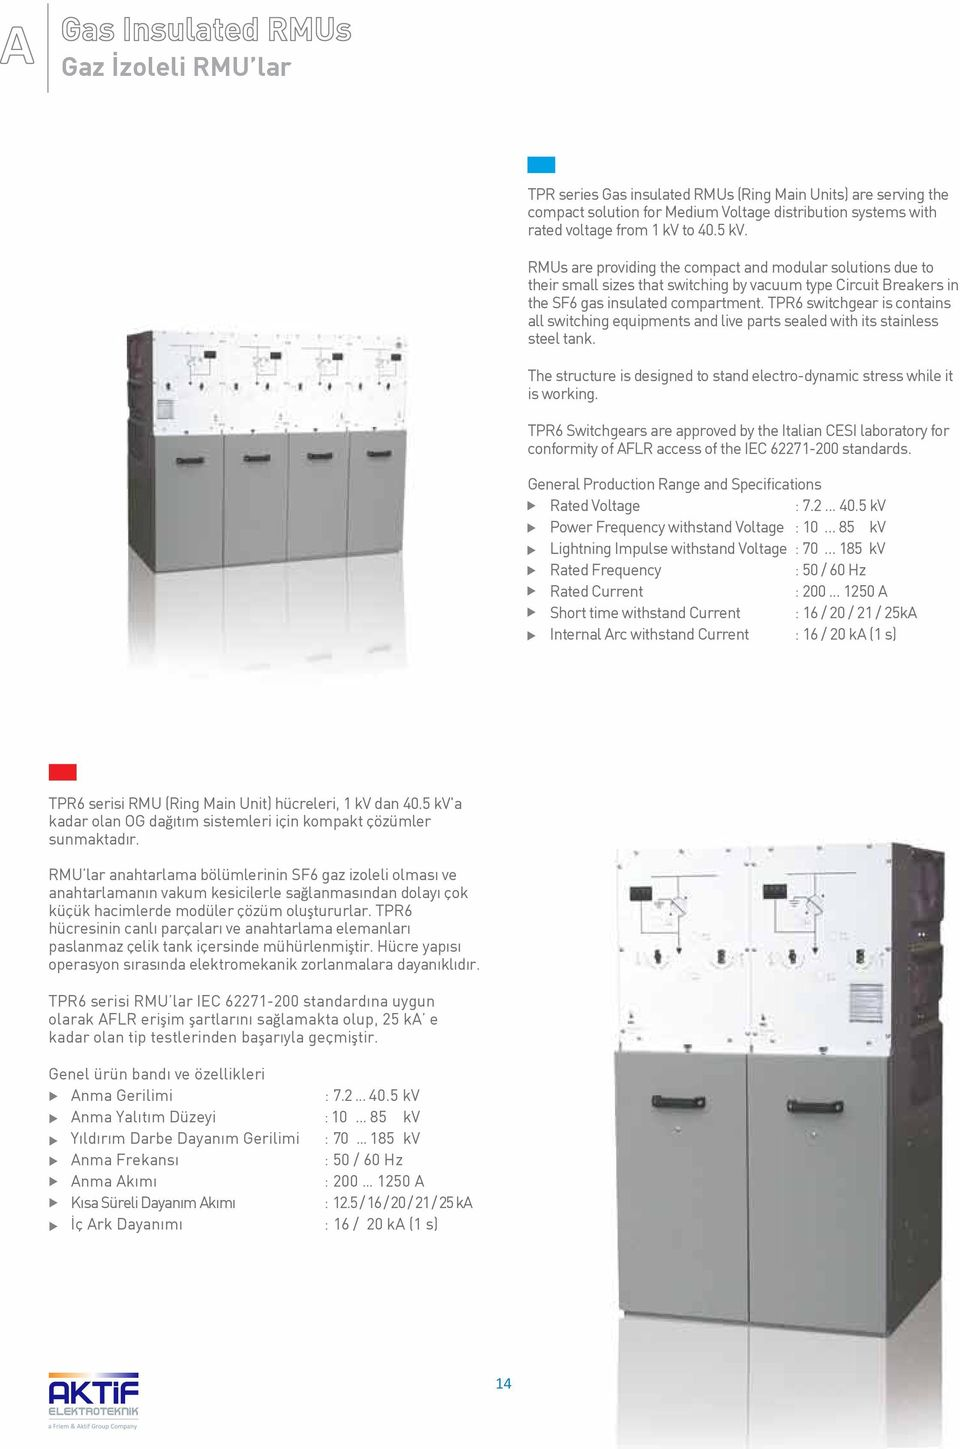 TPR6 switchgear is contains all switching equipments and live parts sealed with its stainless steel tank. The structure is designed to stand electro-dynamic stress while it is working.